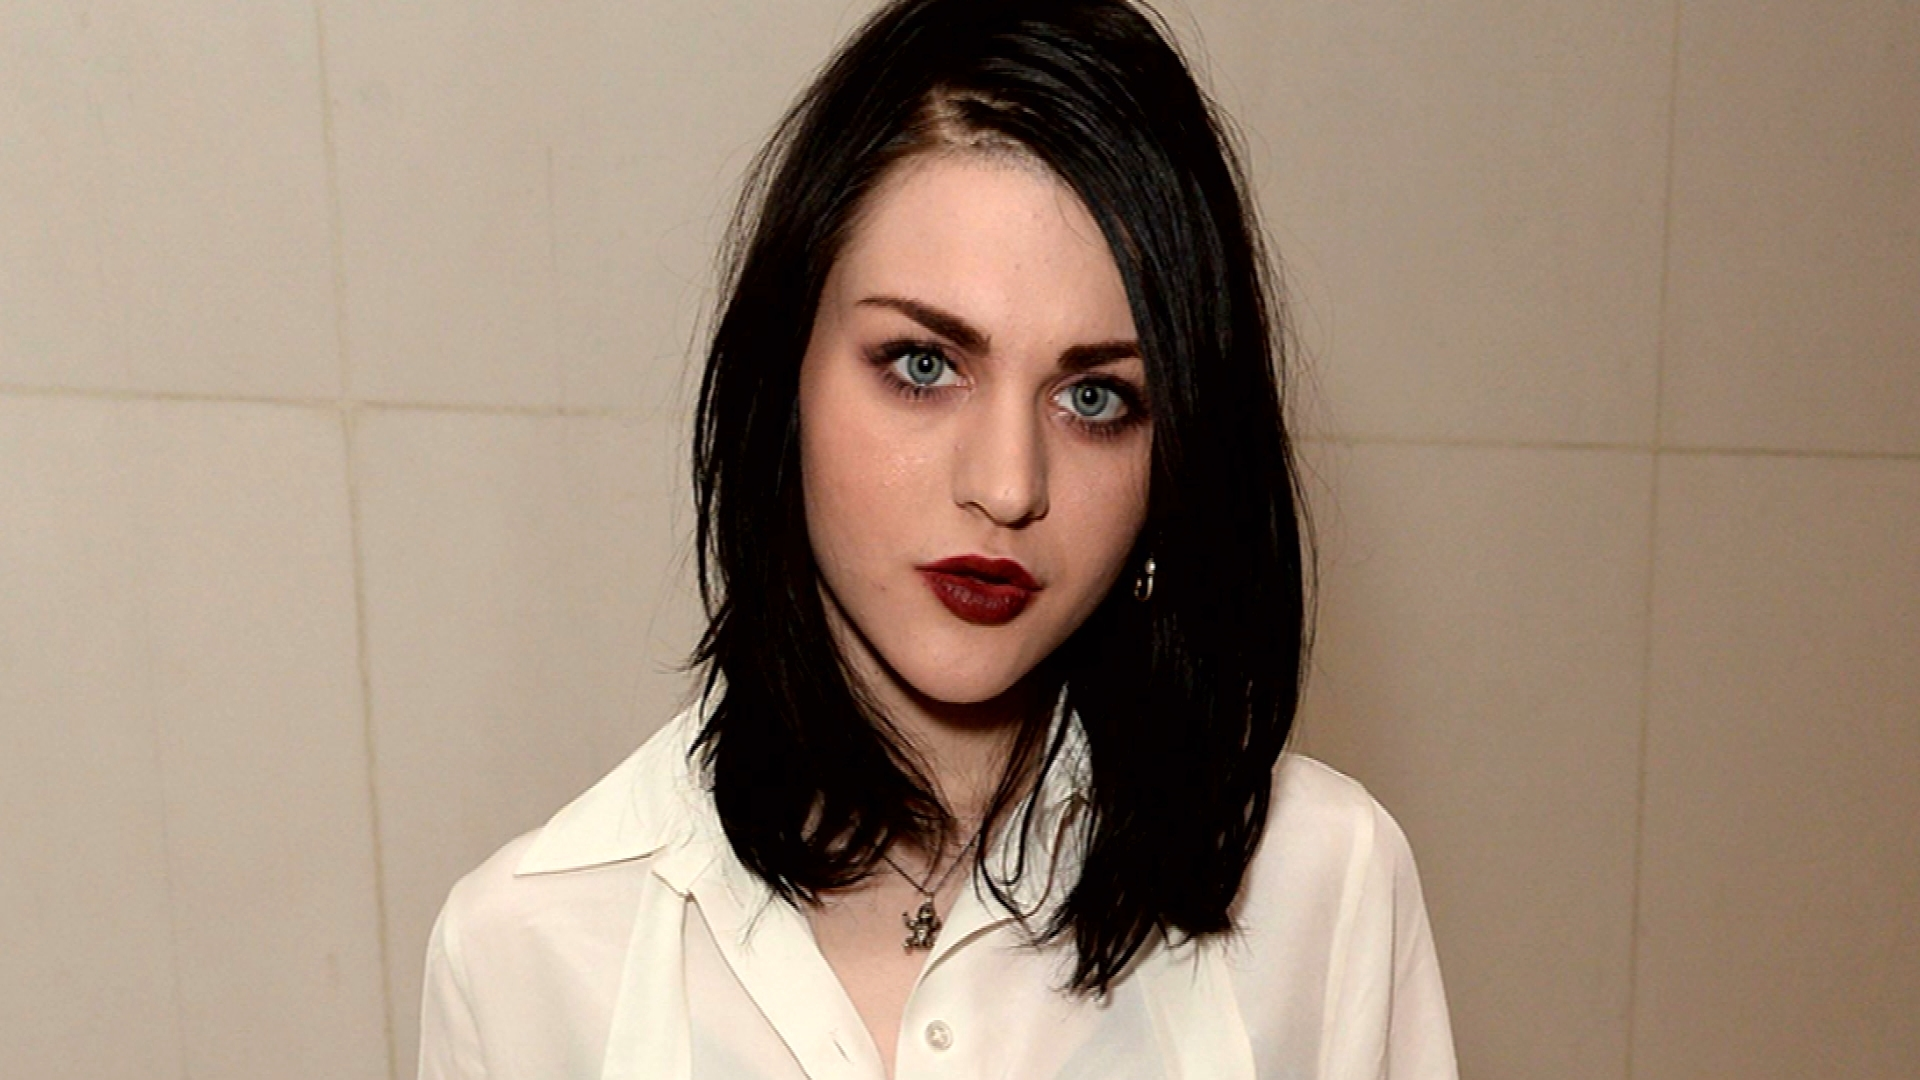 Frances Bean Cobain Files for Divorce